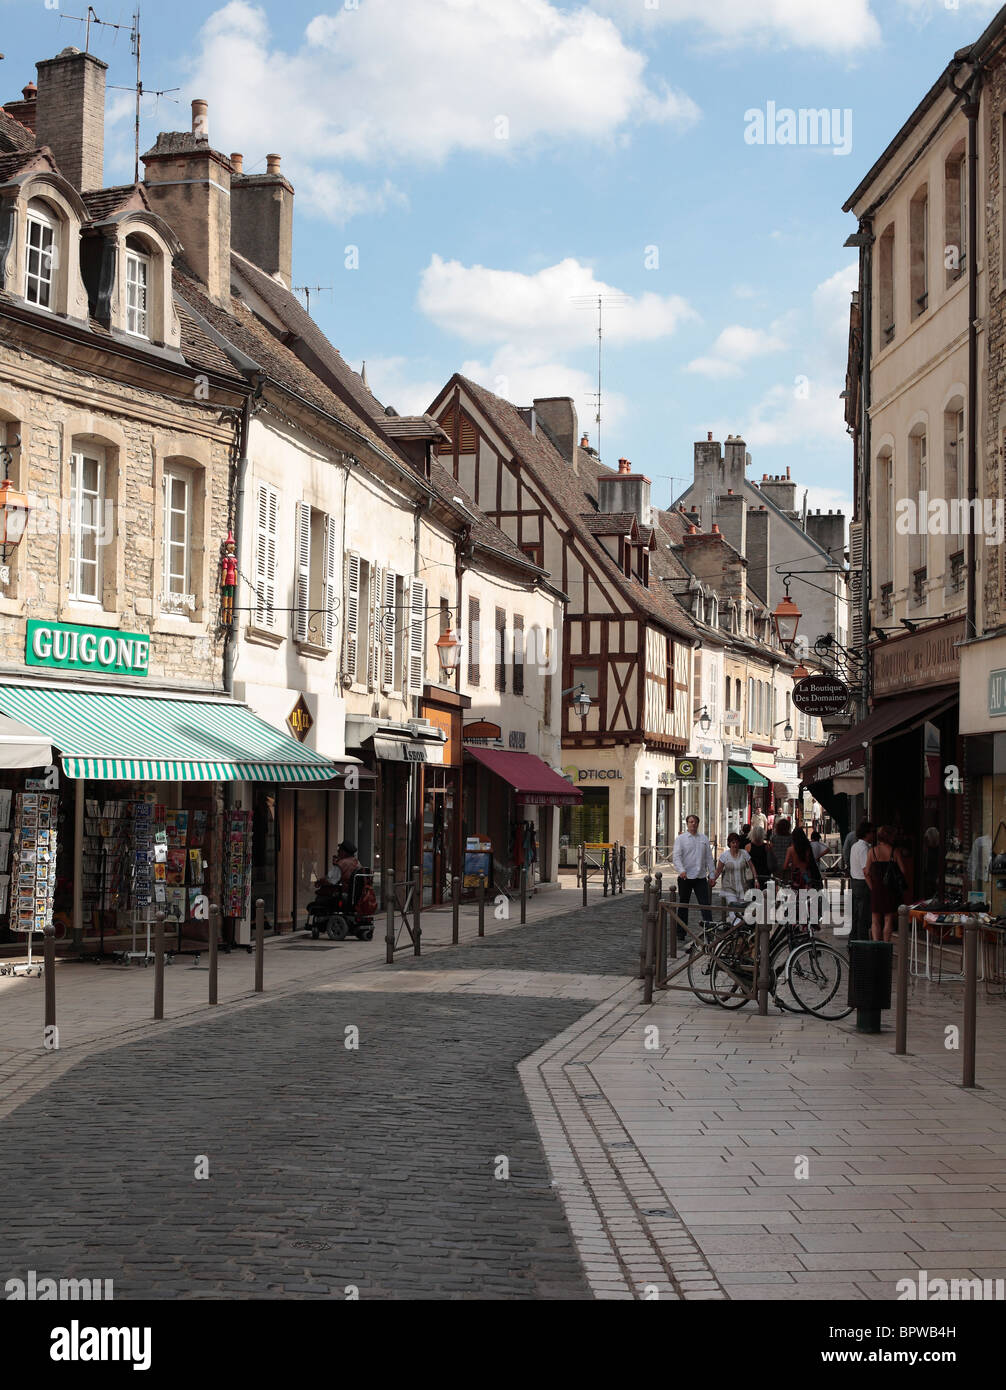 Medieval French Town of Beaune in Burgundy. - Stock Image